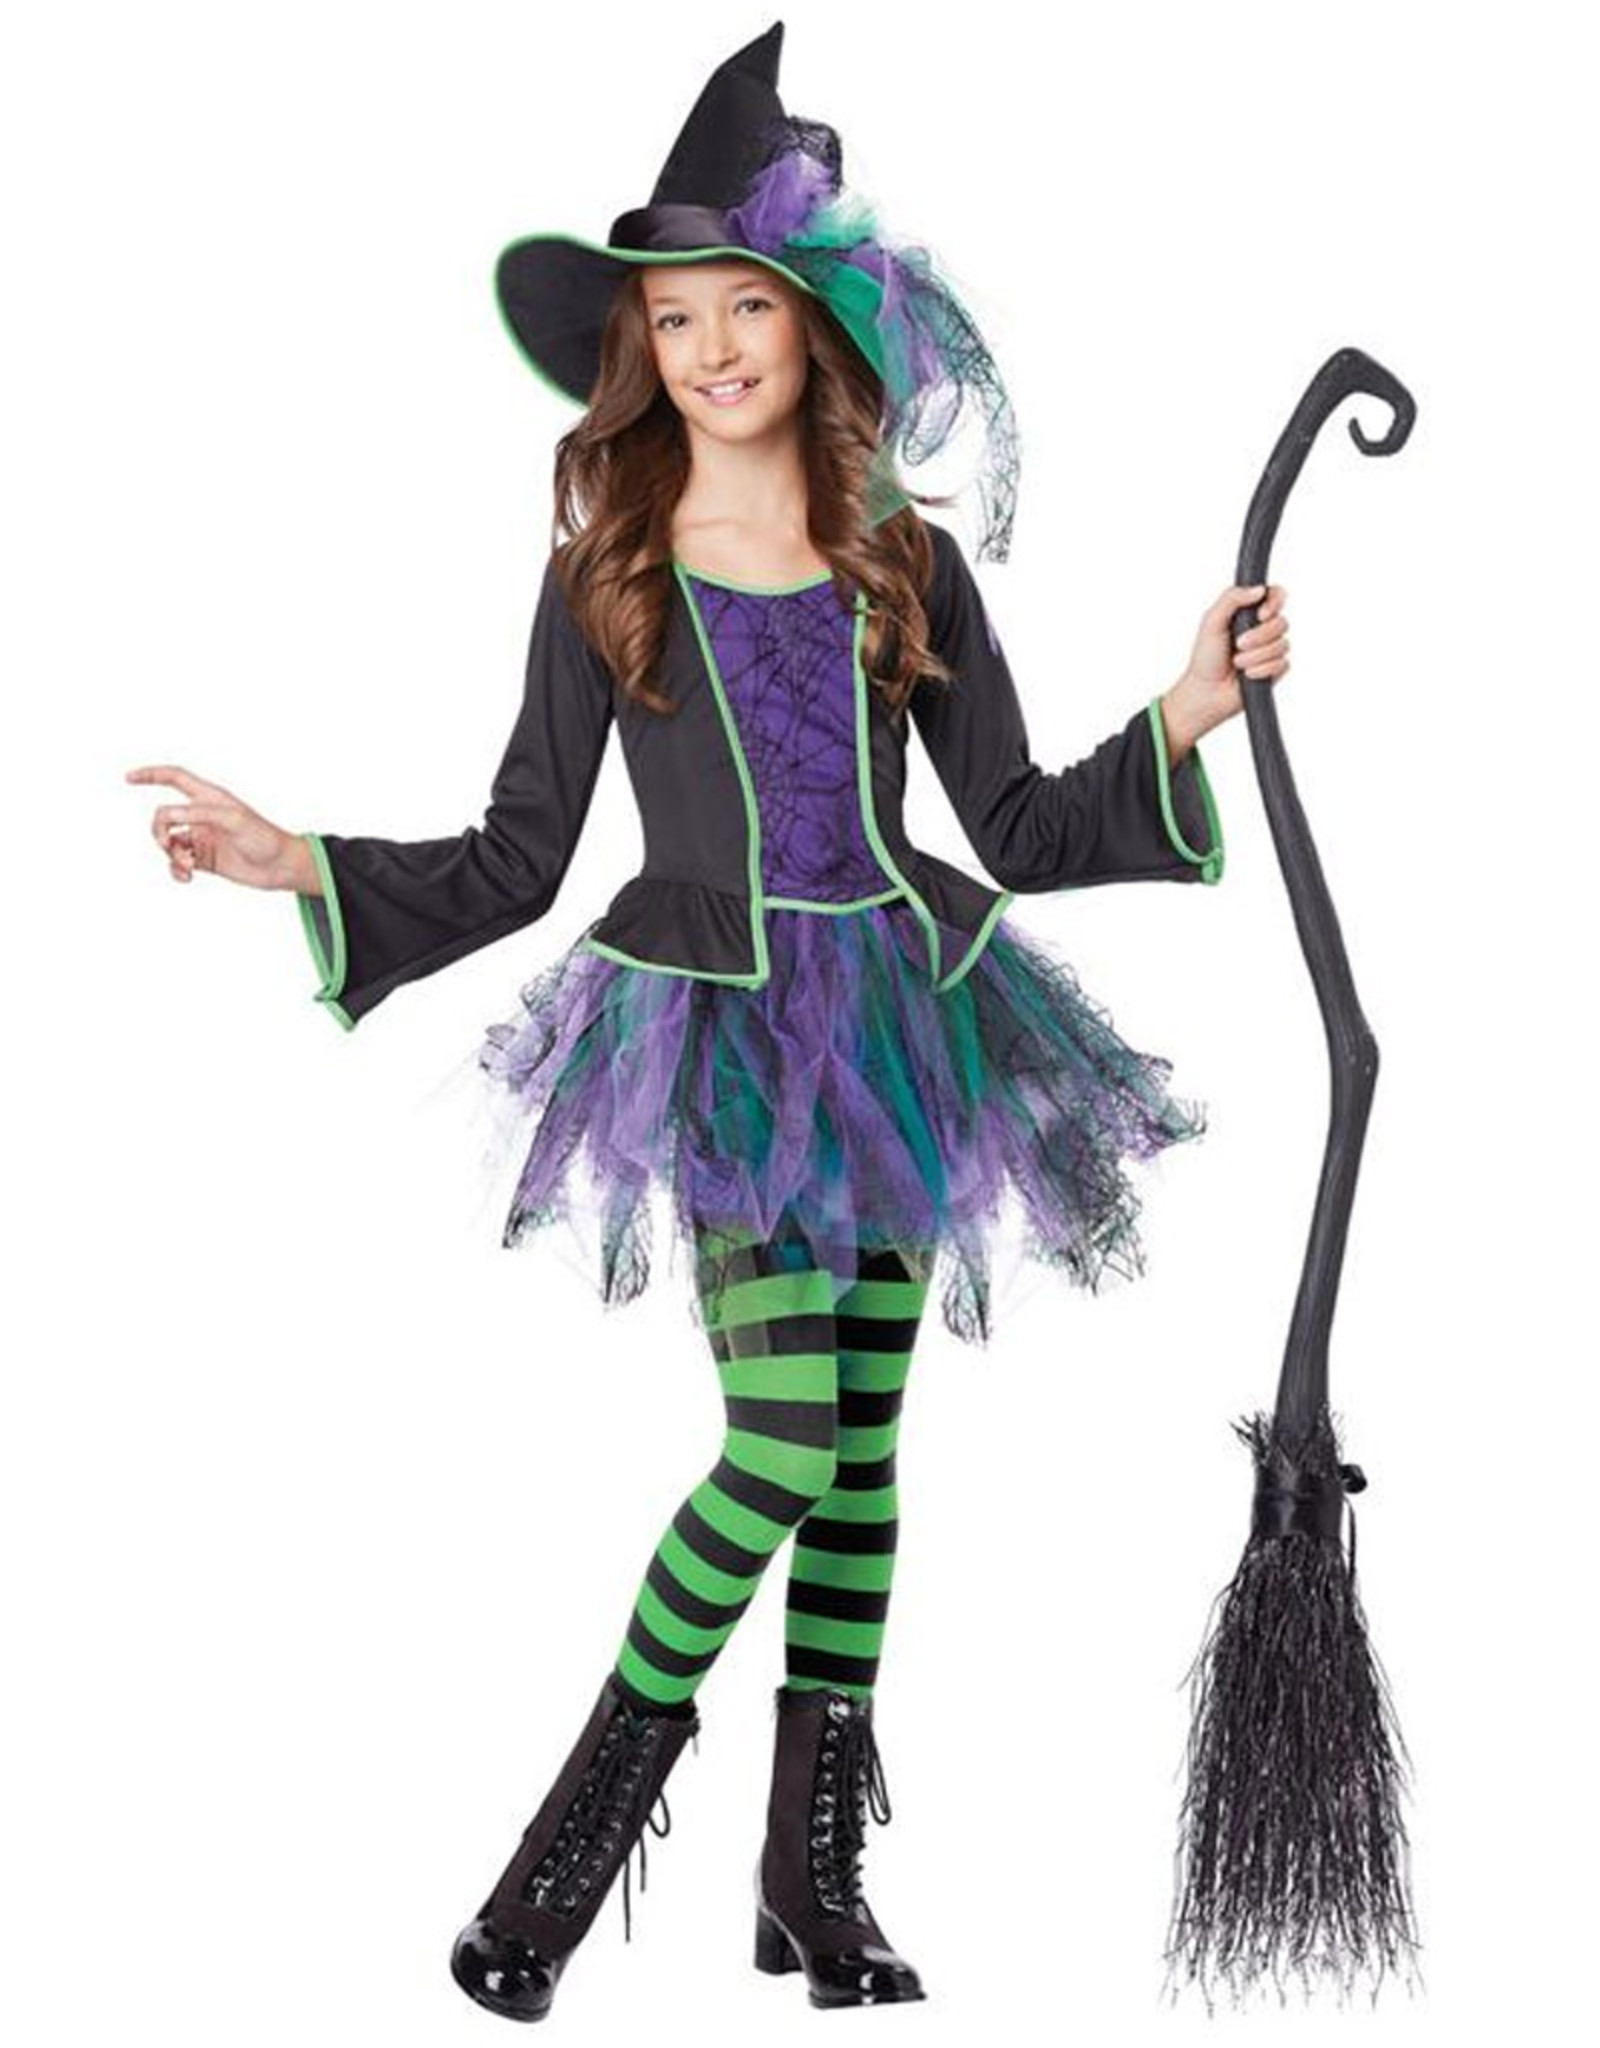 Festive Witch Costume - Girls